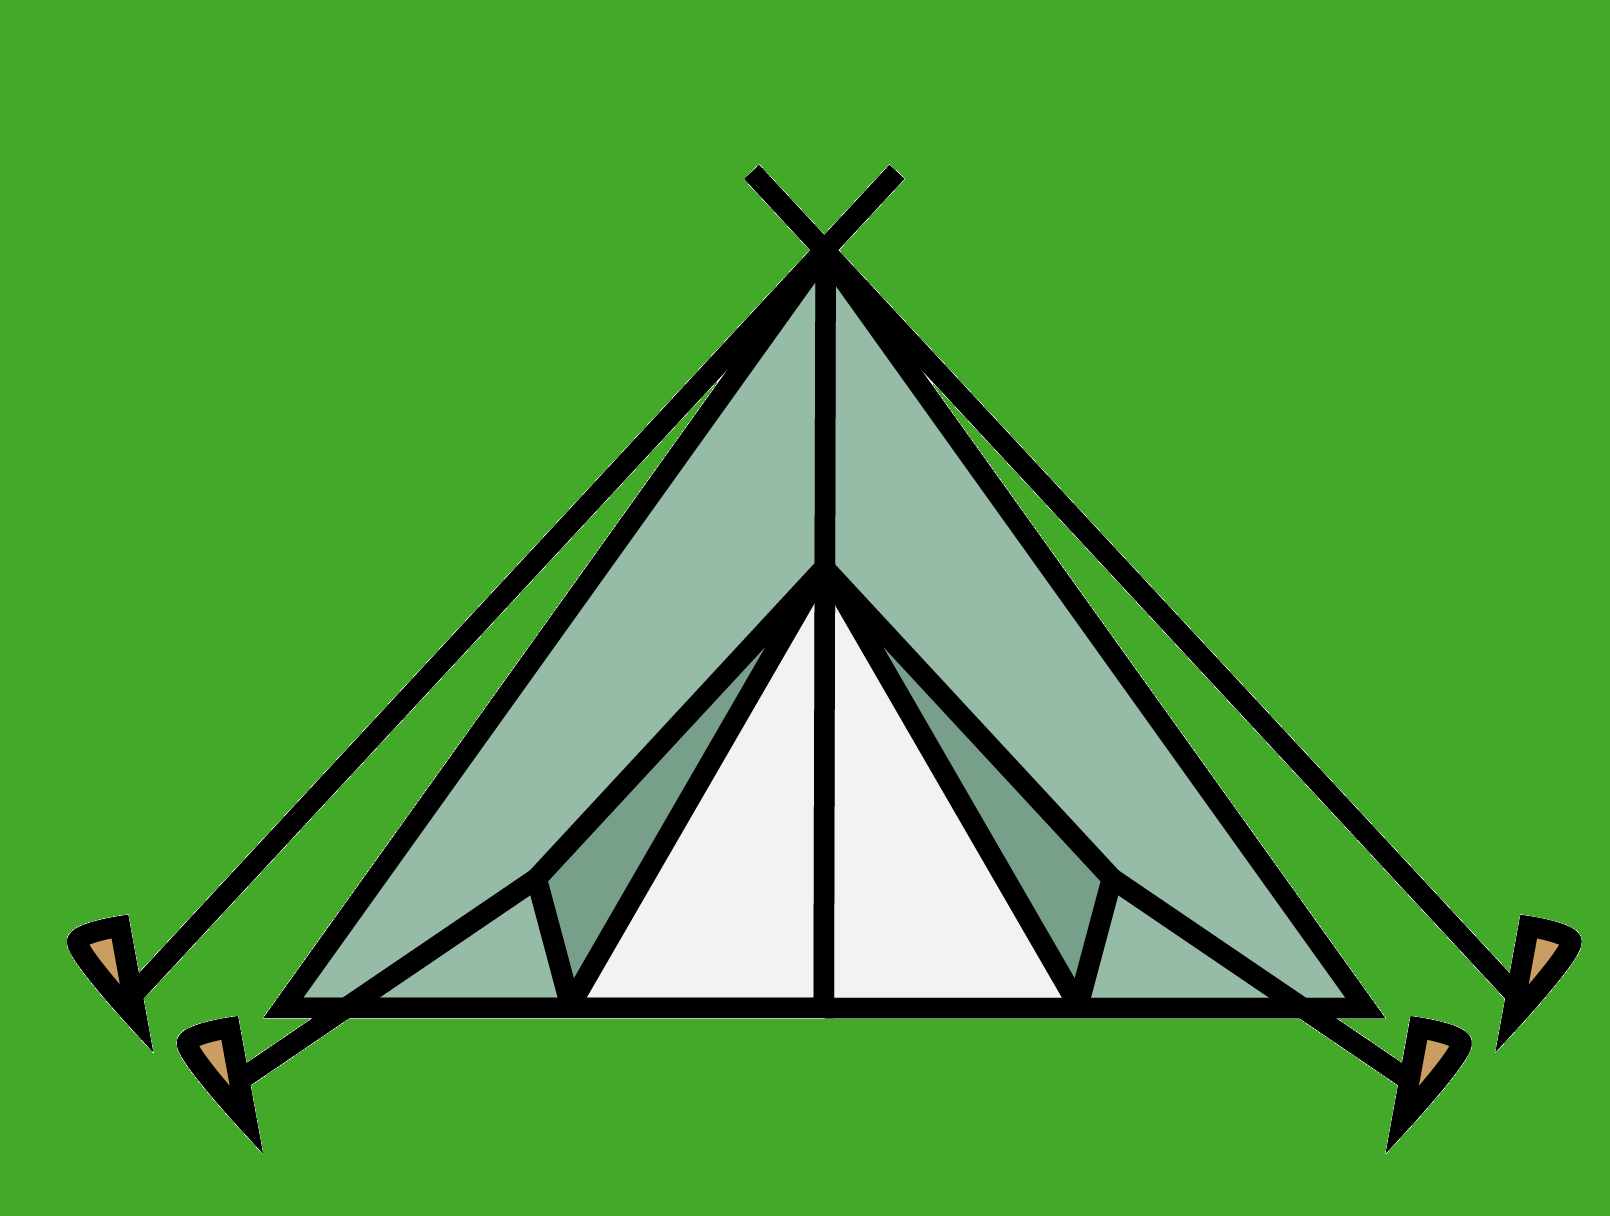 Luxus Camping Zelt Icon